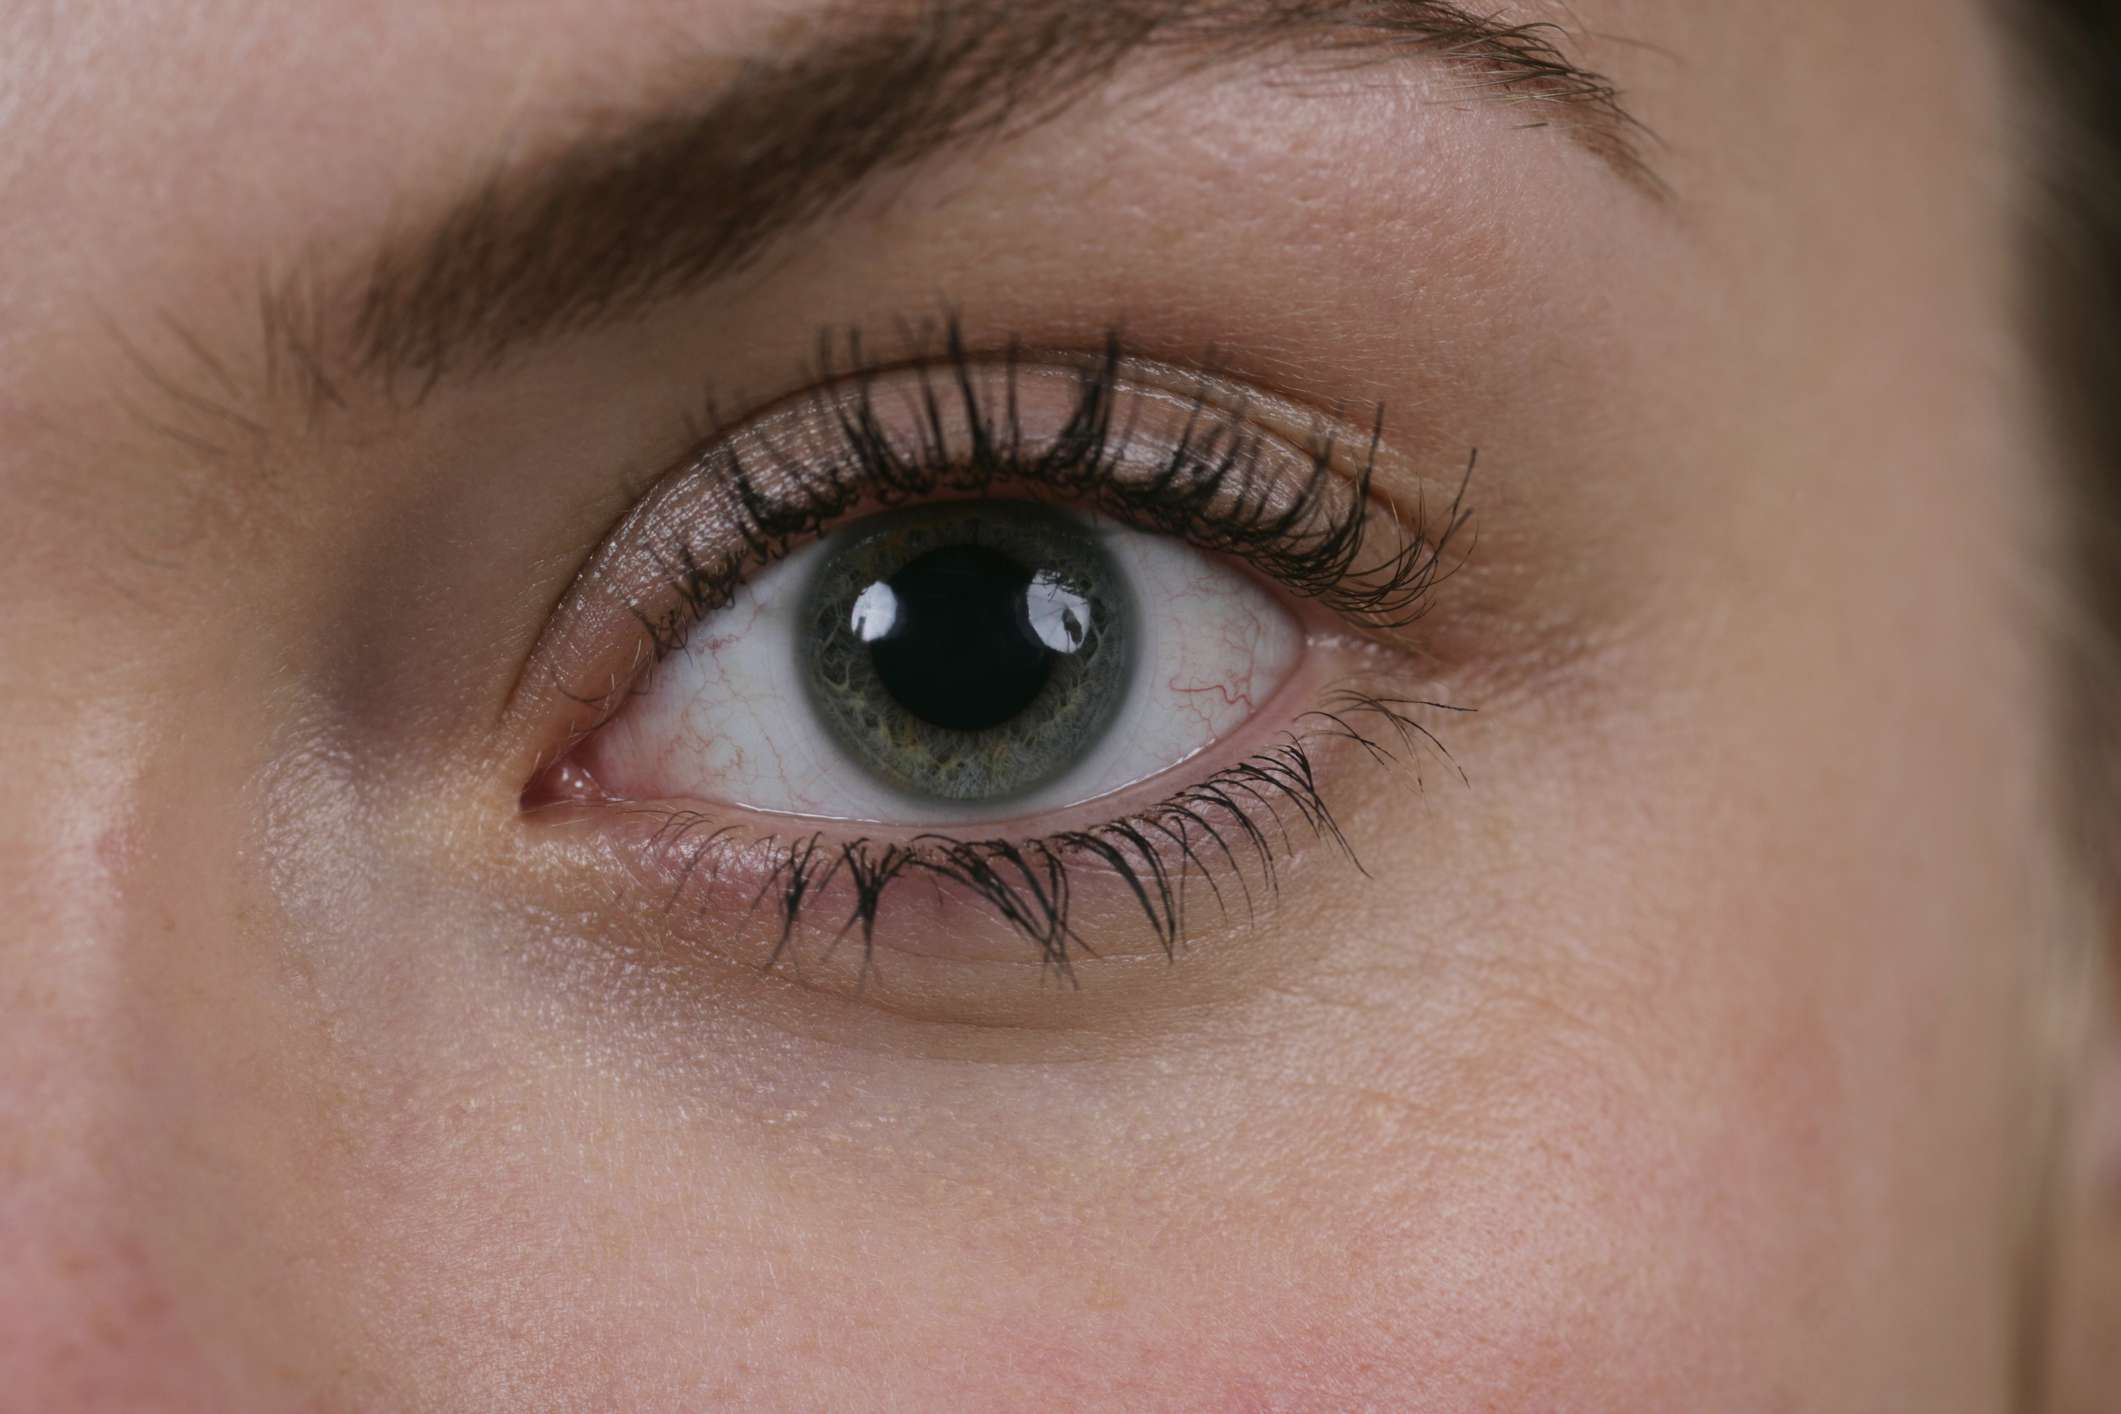 Dilated pupil close up